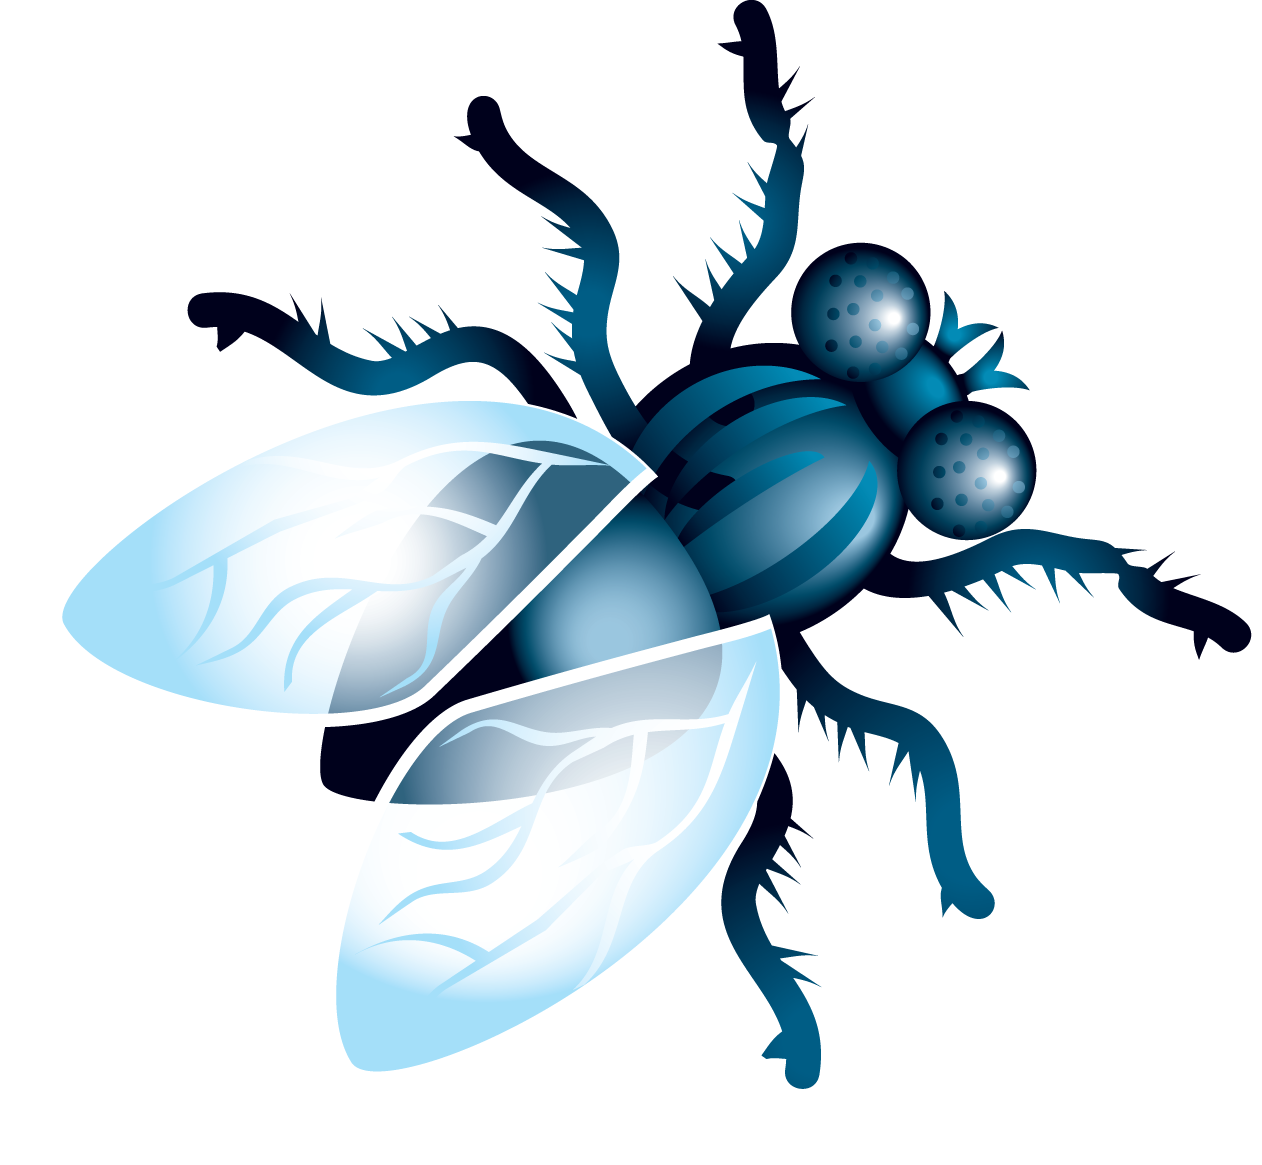 Flies harmful free on. Fly clipart insect